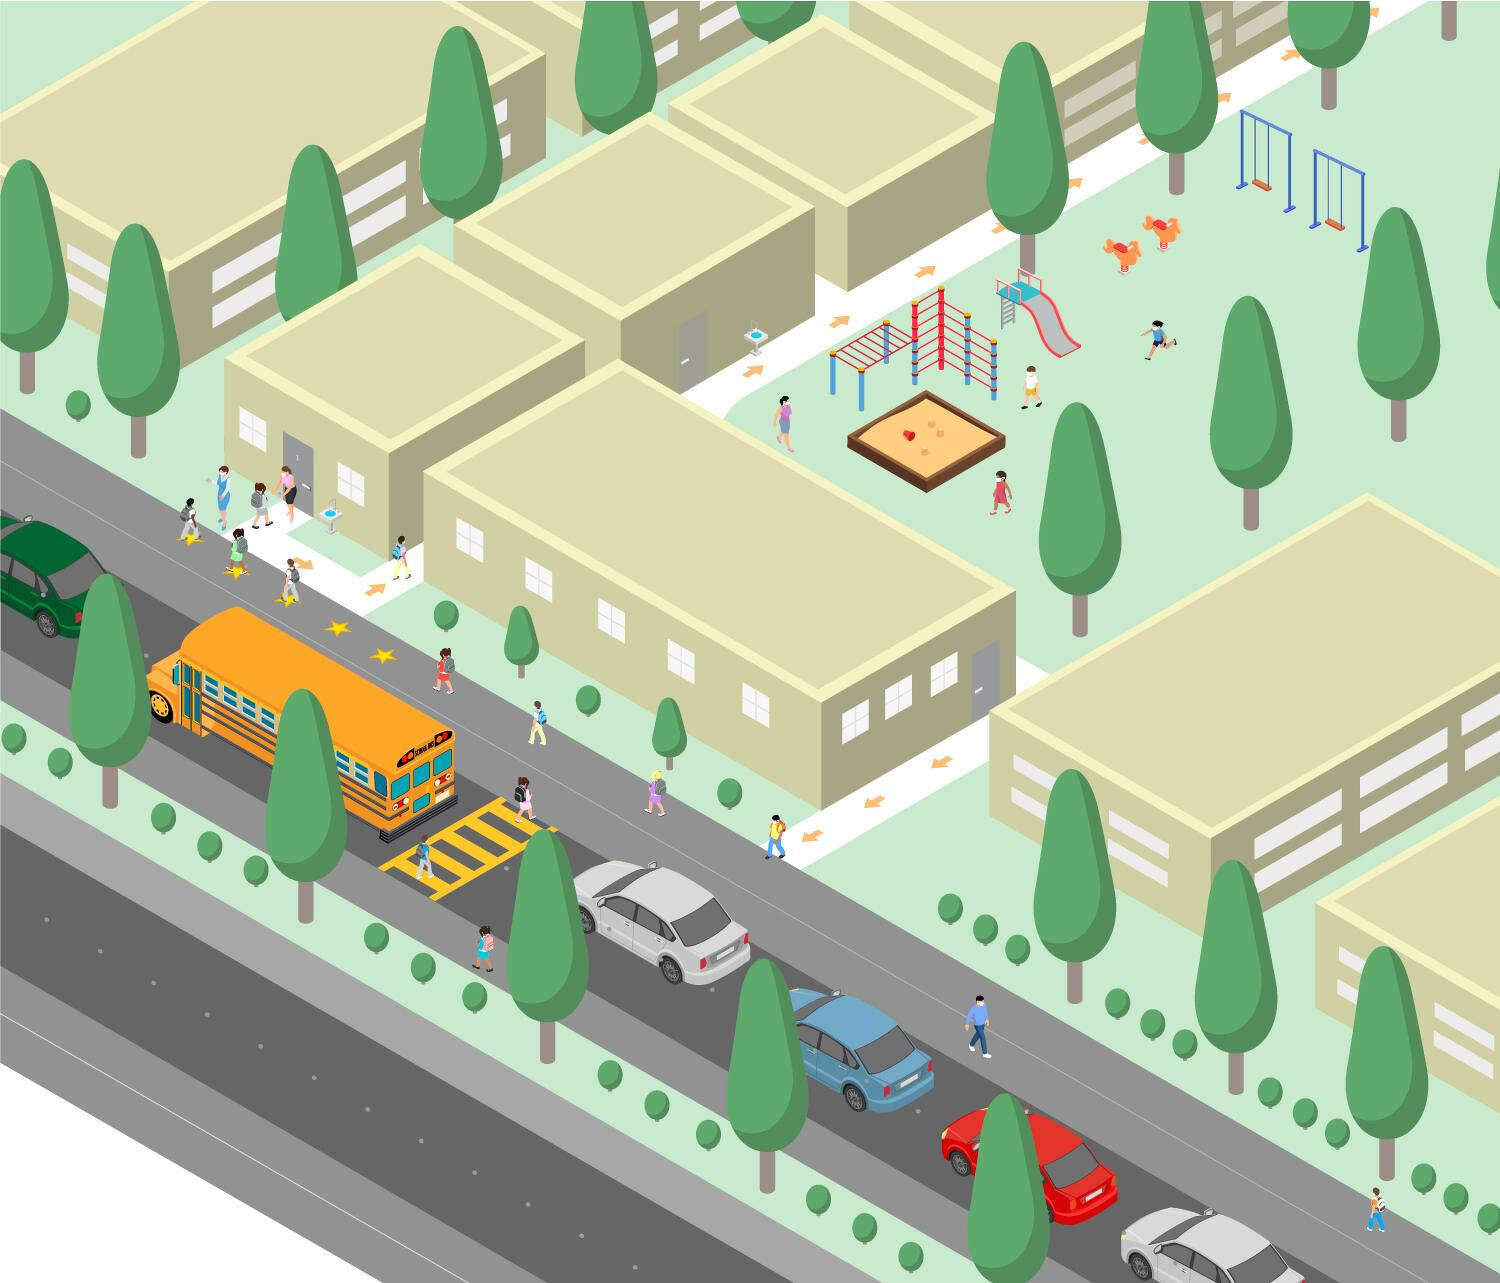 Drawing of school, with buses and cars parked out front.